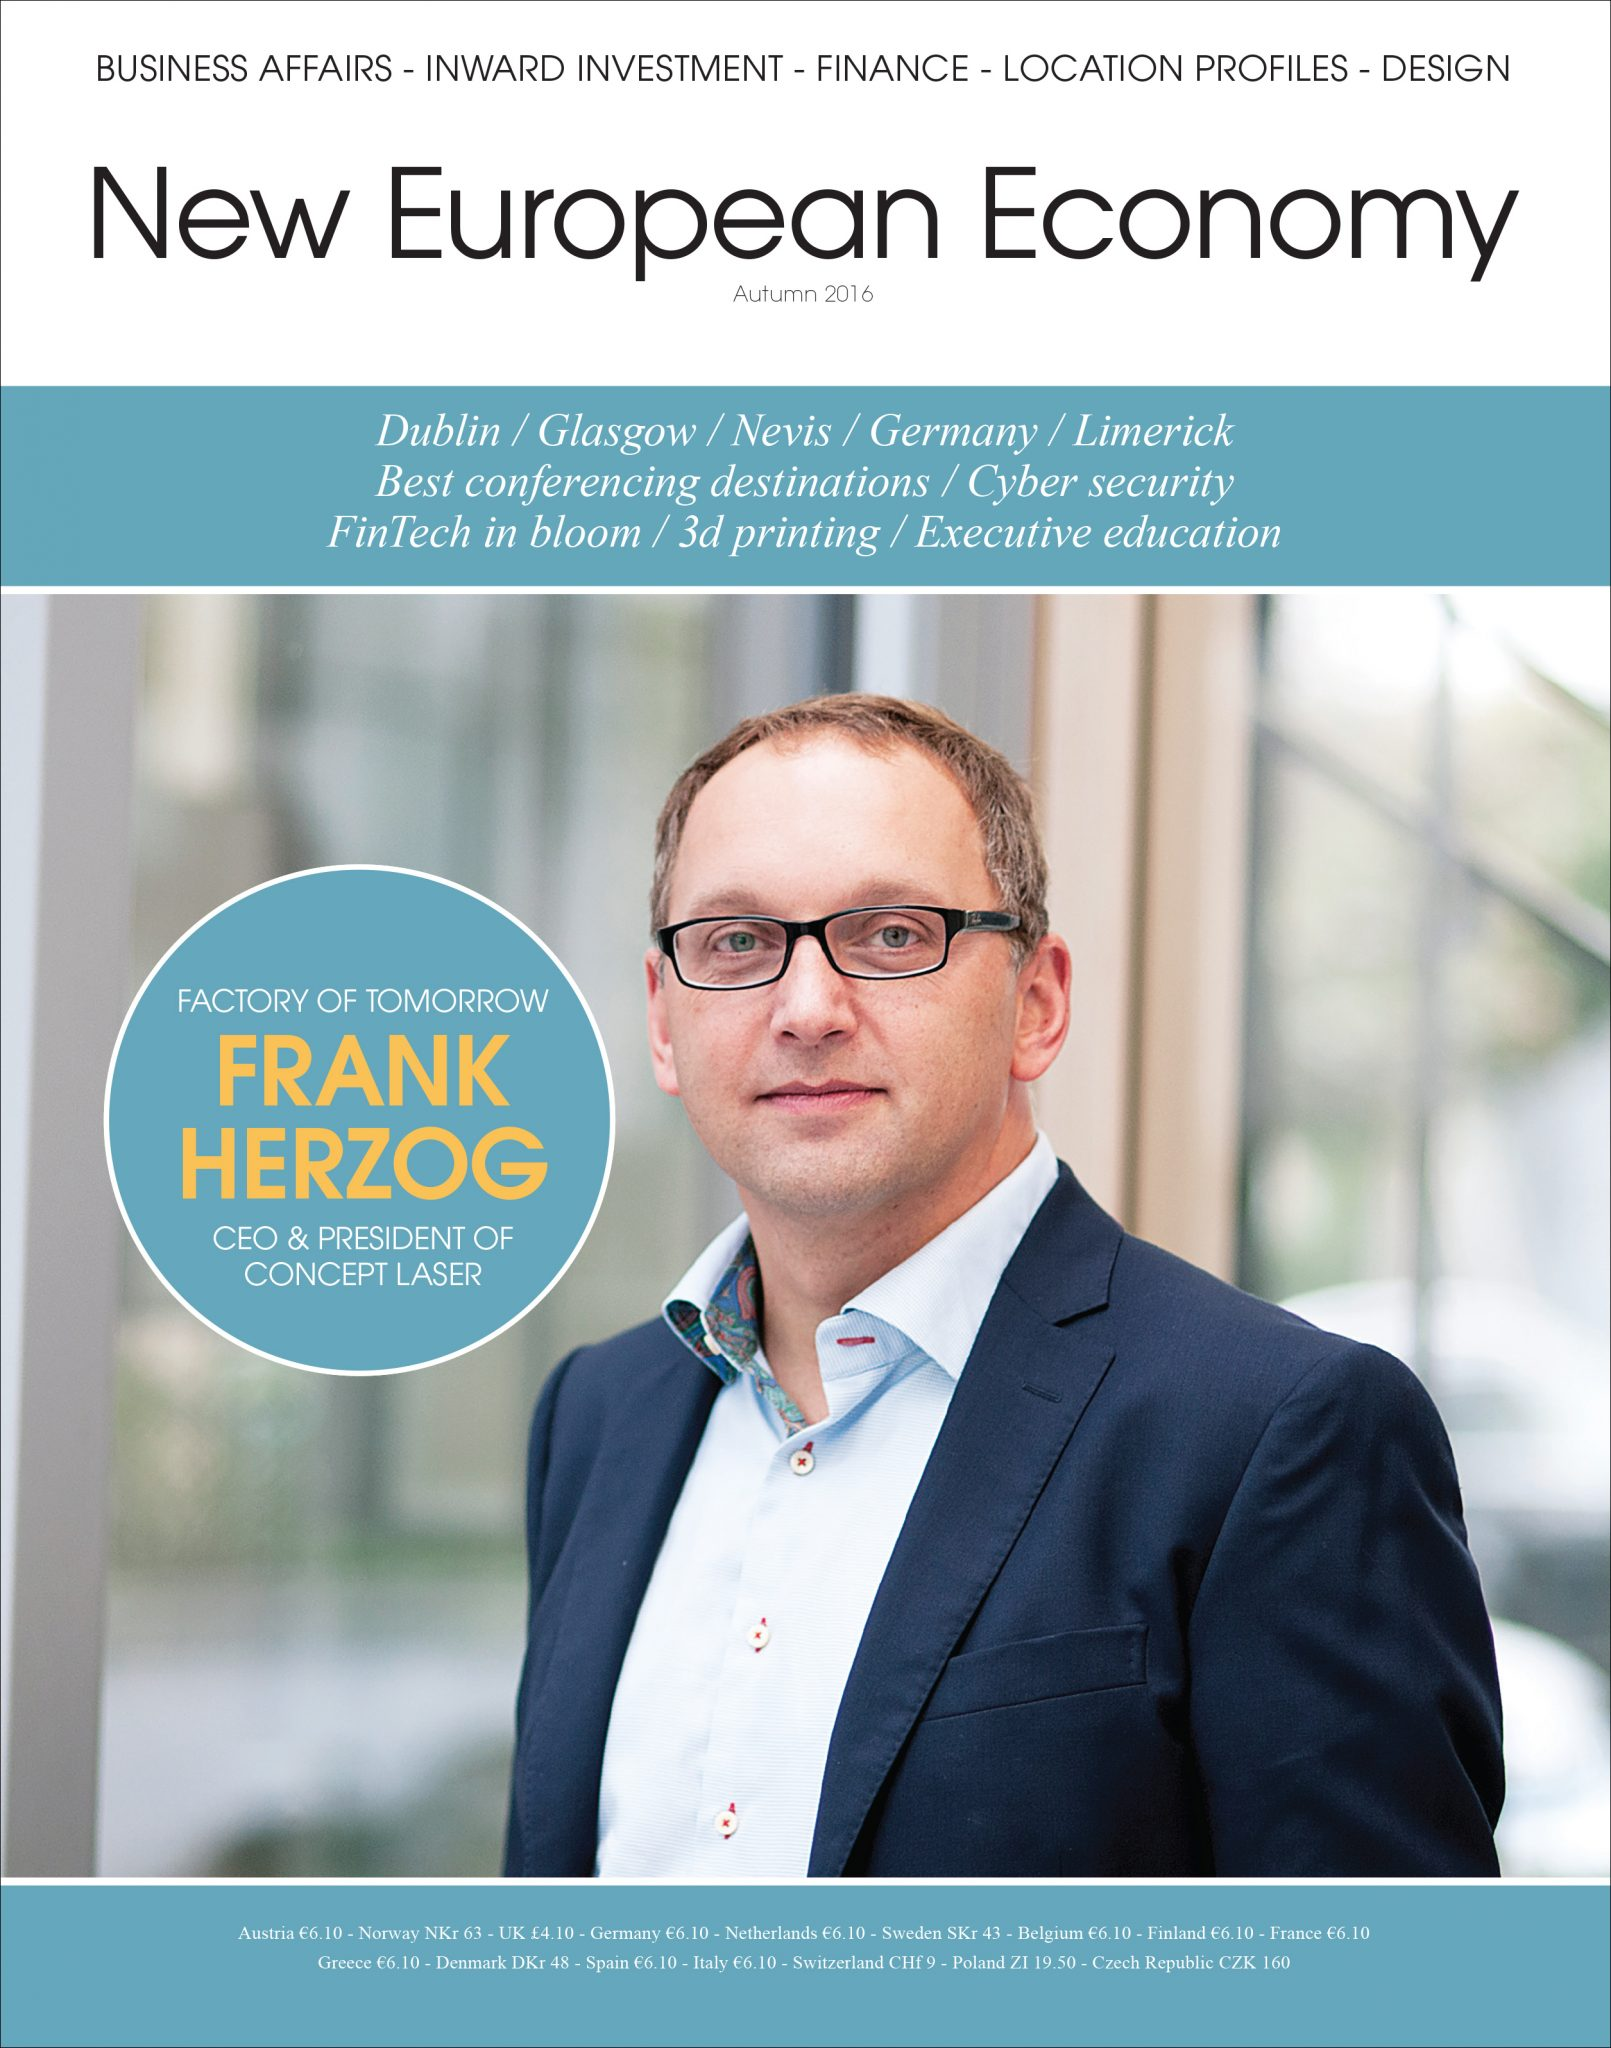 New European Economy Autumn Winter 2016